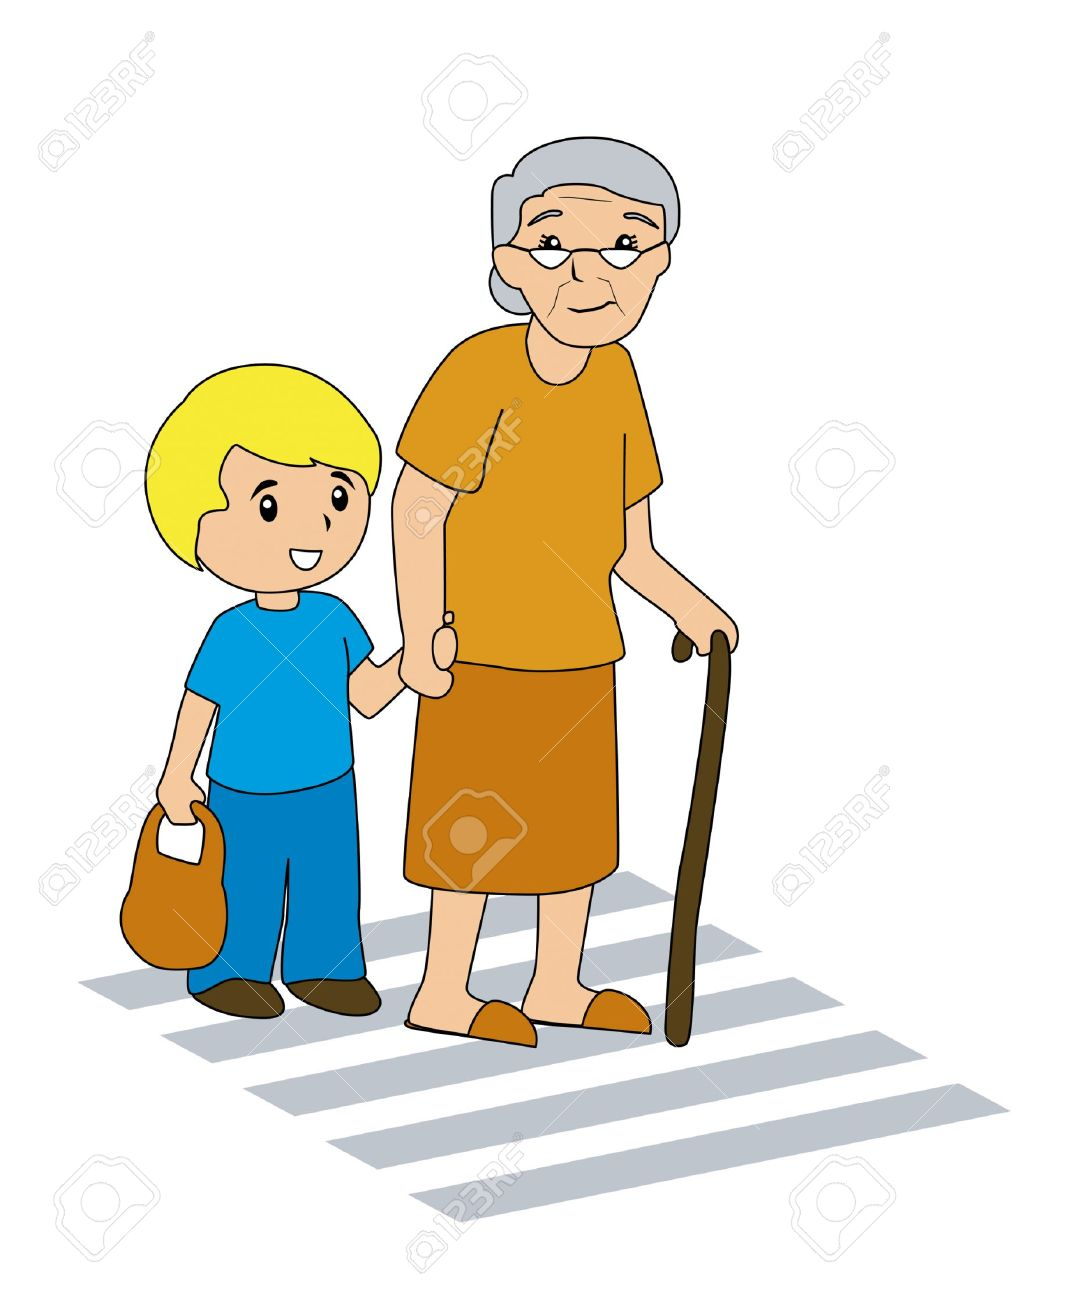 Children helping elderly clipart 6 » Clipart Station.